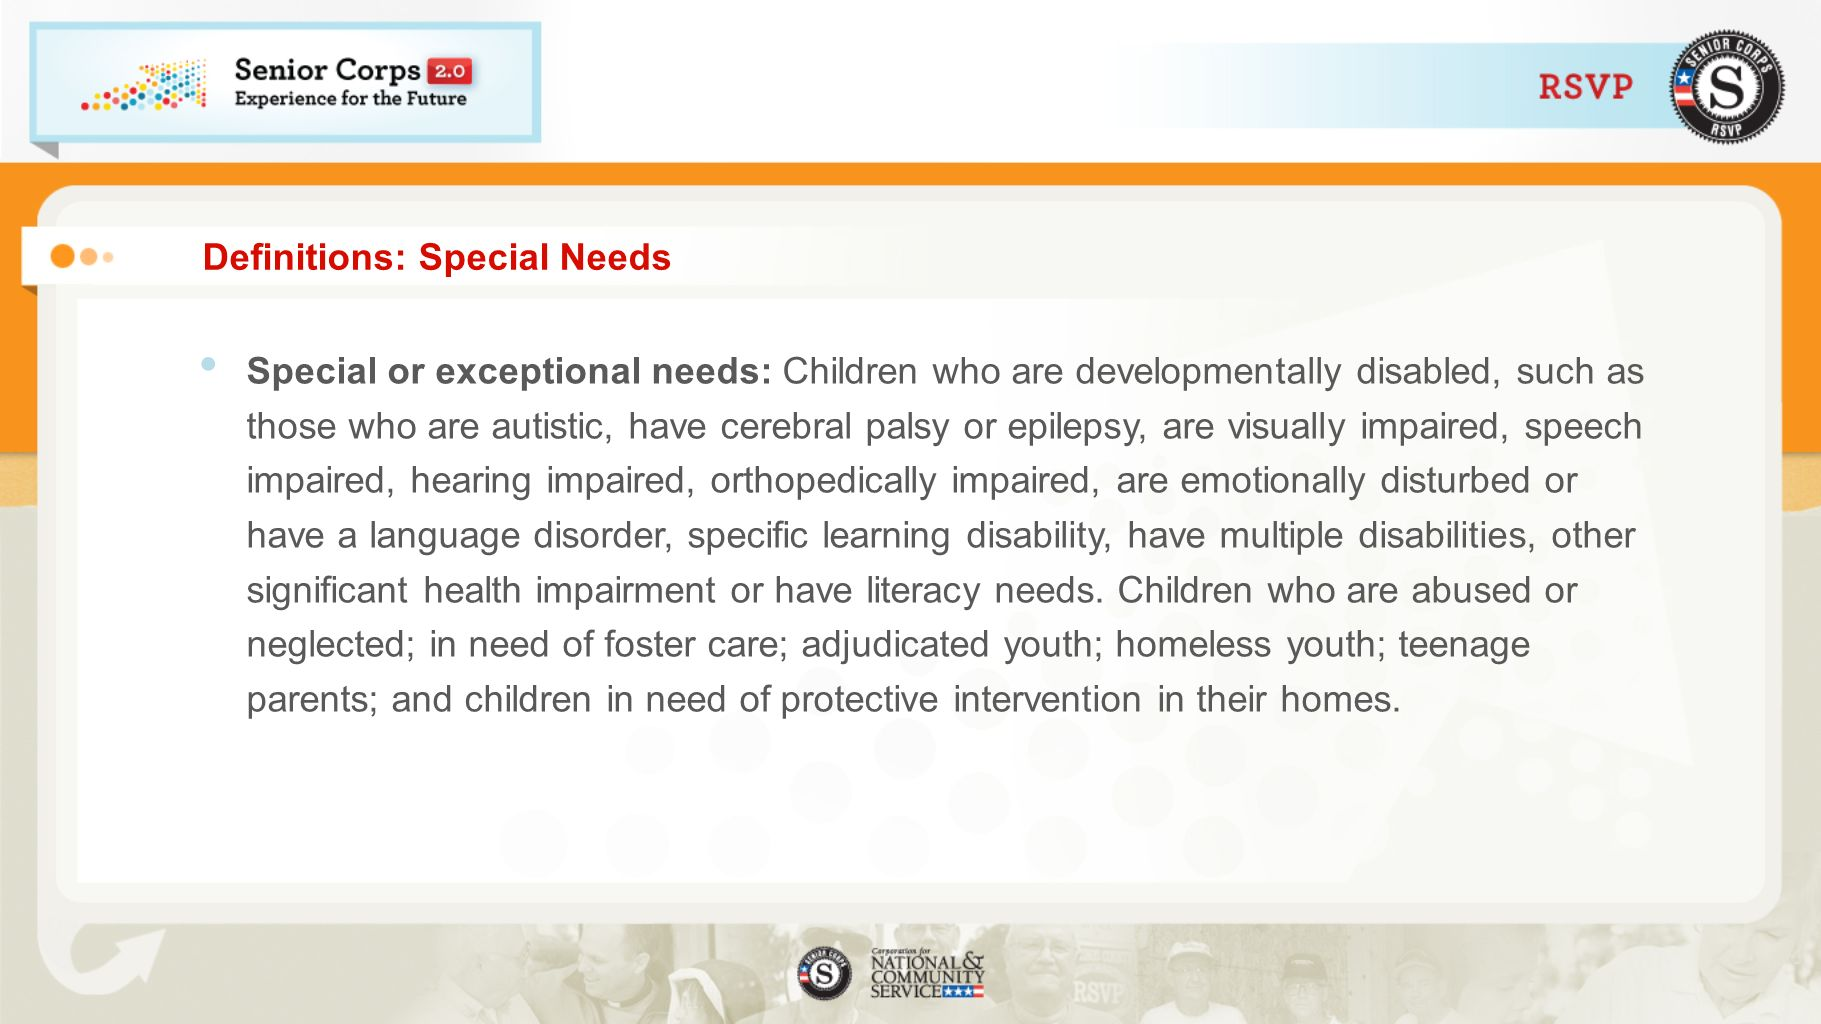 Definitions: Special Needs